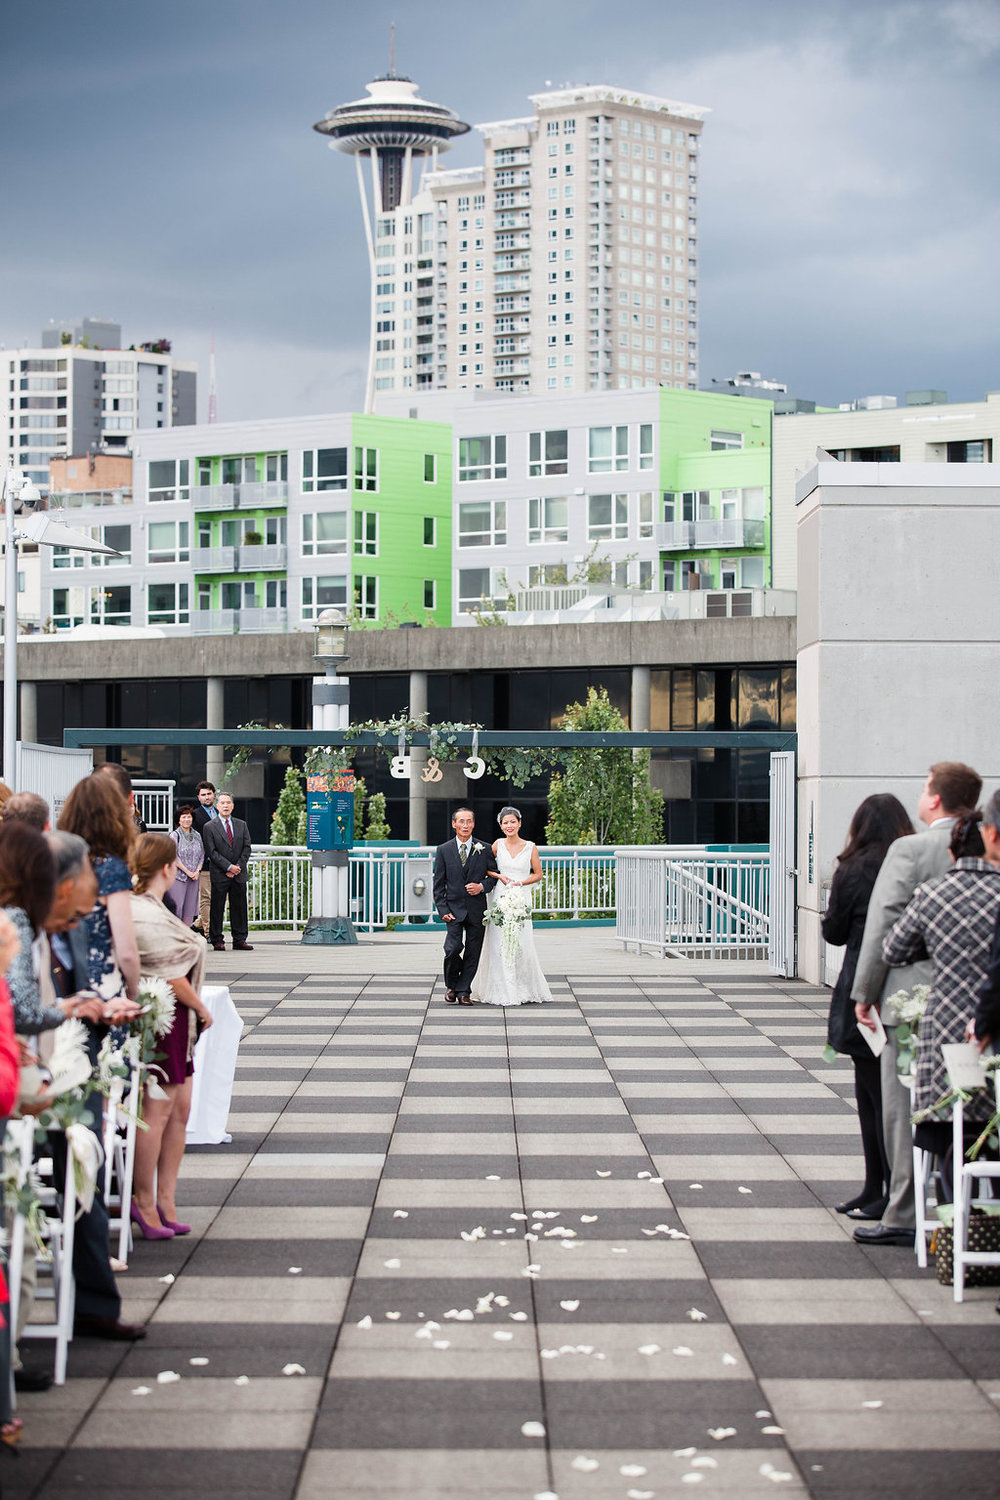 Bao_Uyen+Chris_Wedding_Seattle_Bell_Harbor_6182016_495.jpg